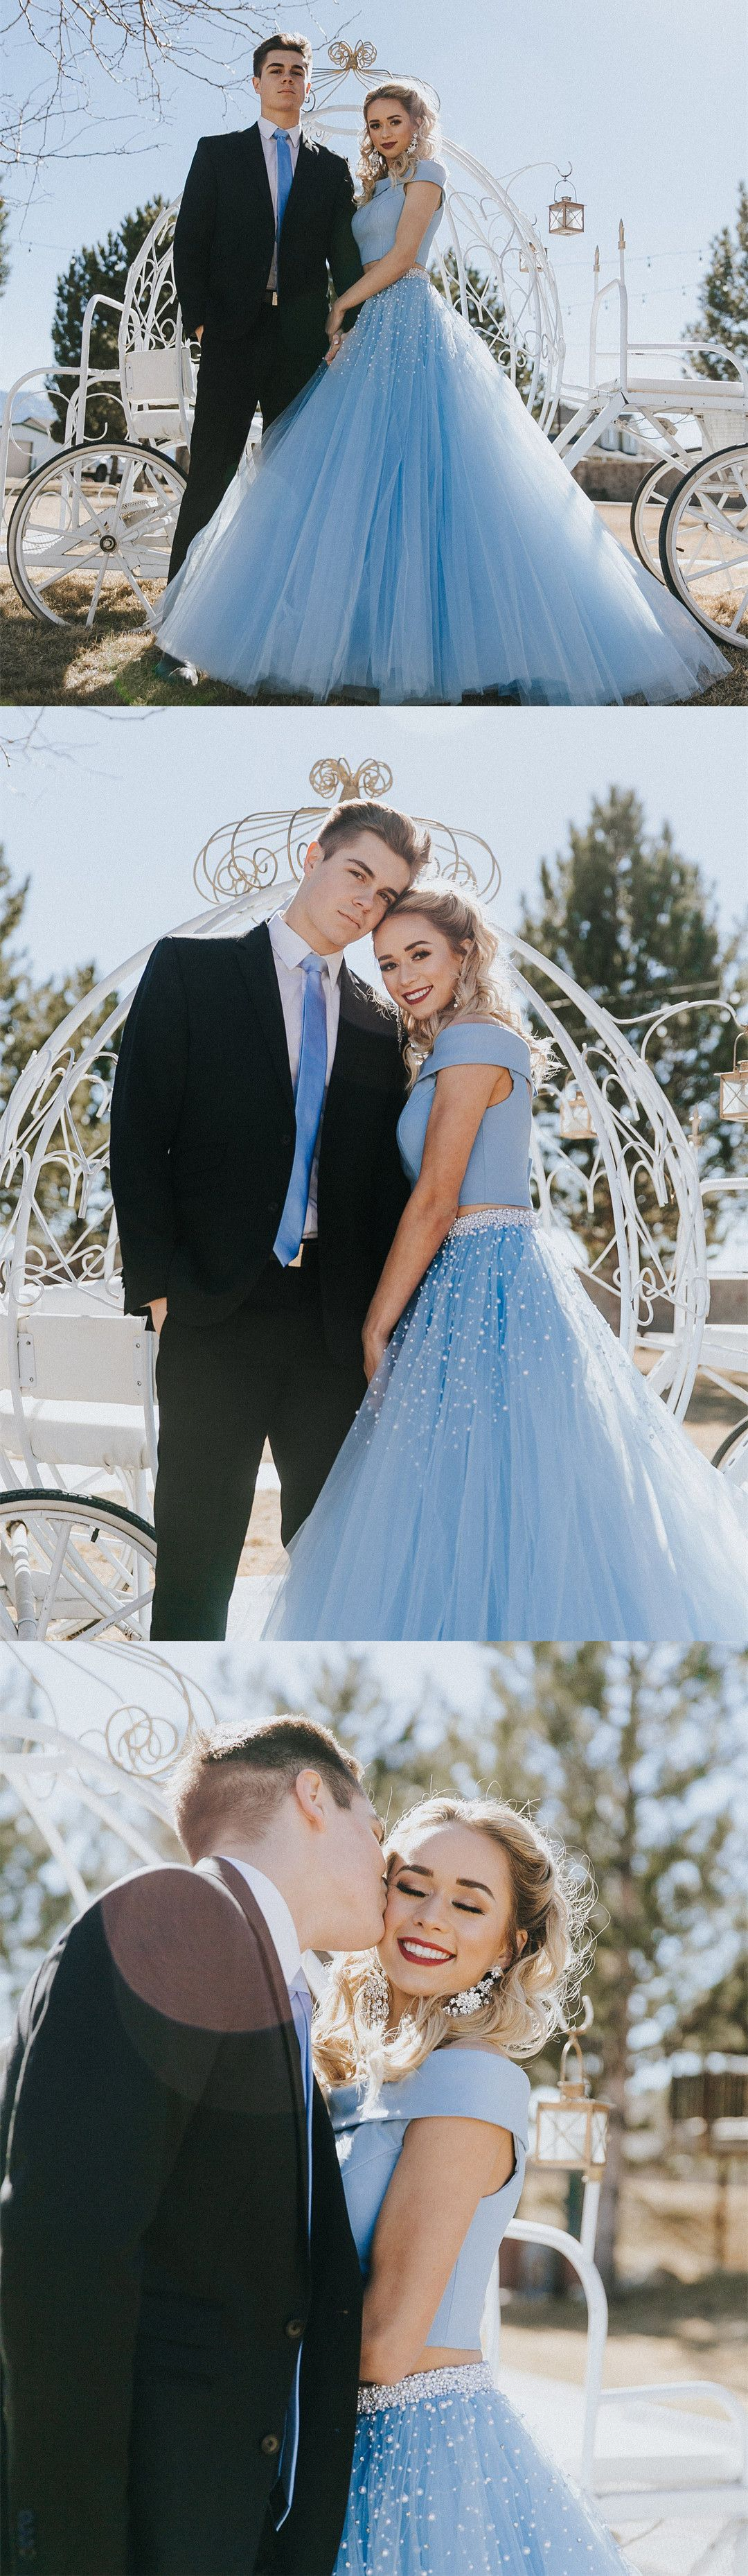 prom dress two piece prom dress blue long prom dress party